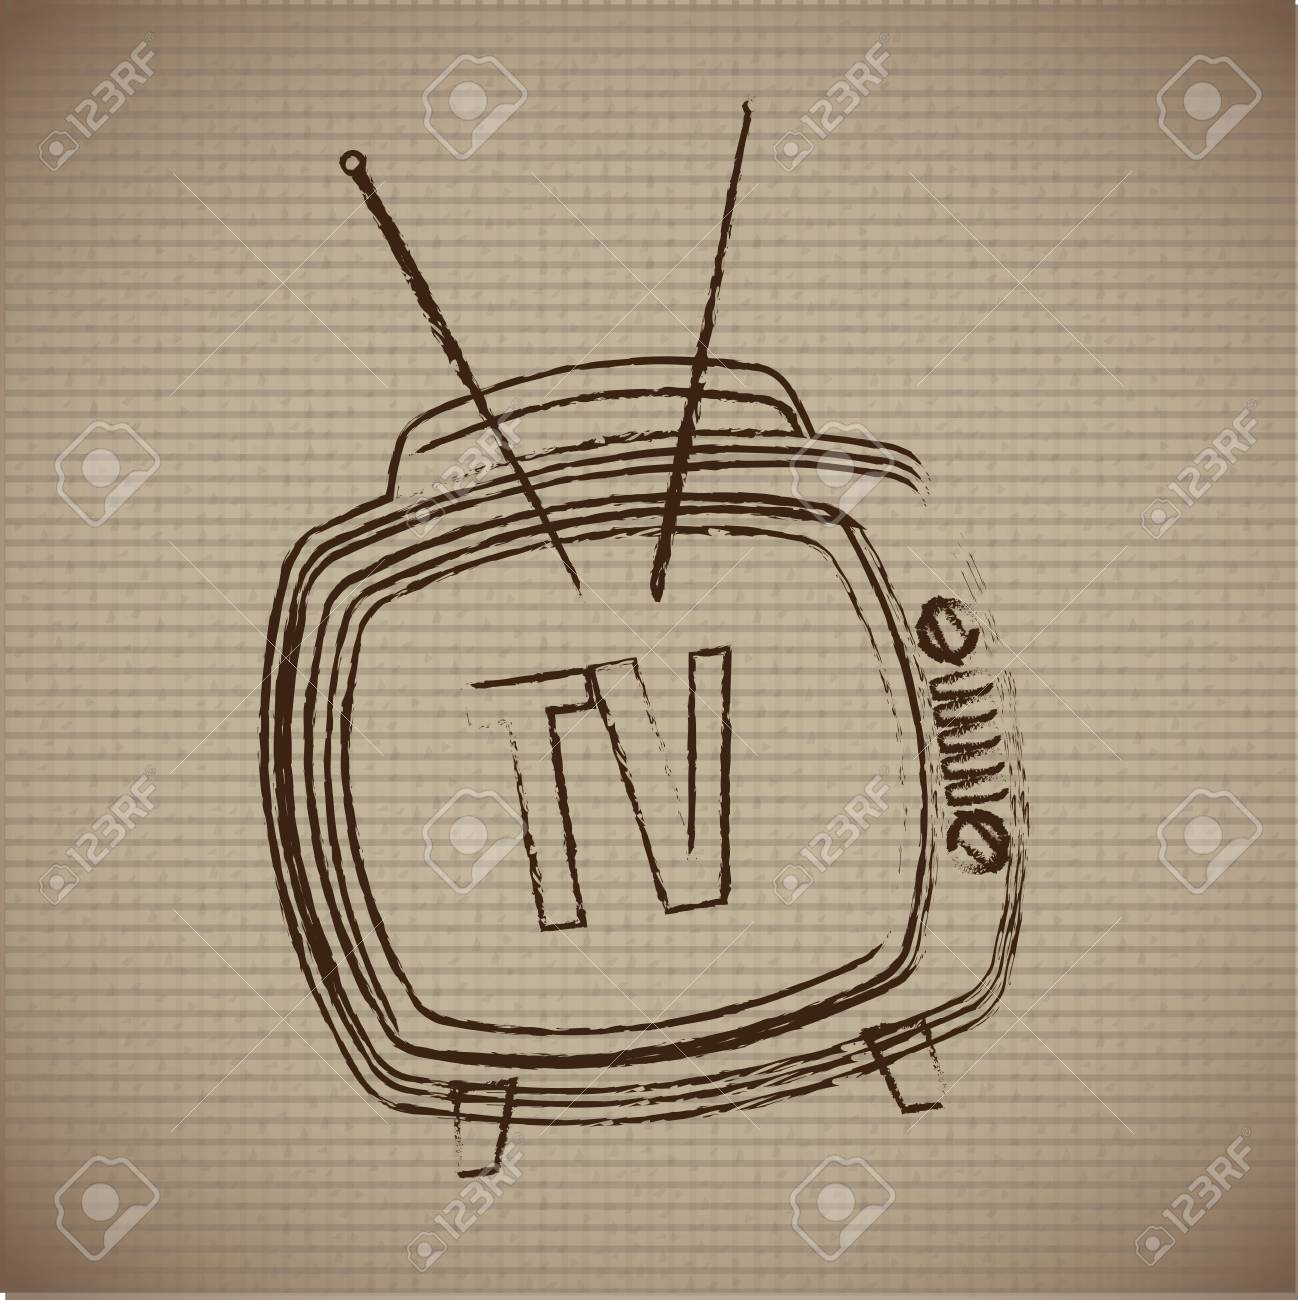 classic television over vintage background Stock Vector - 20702196